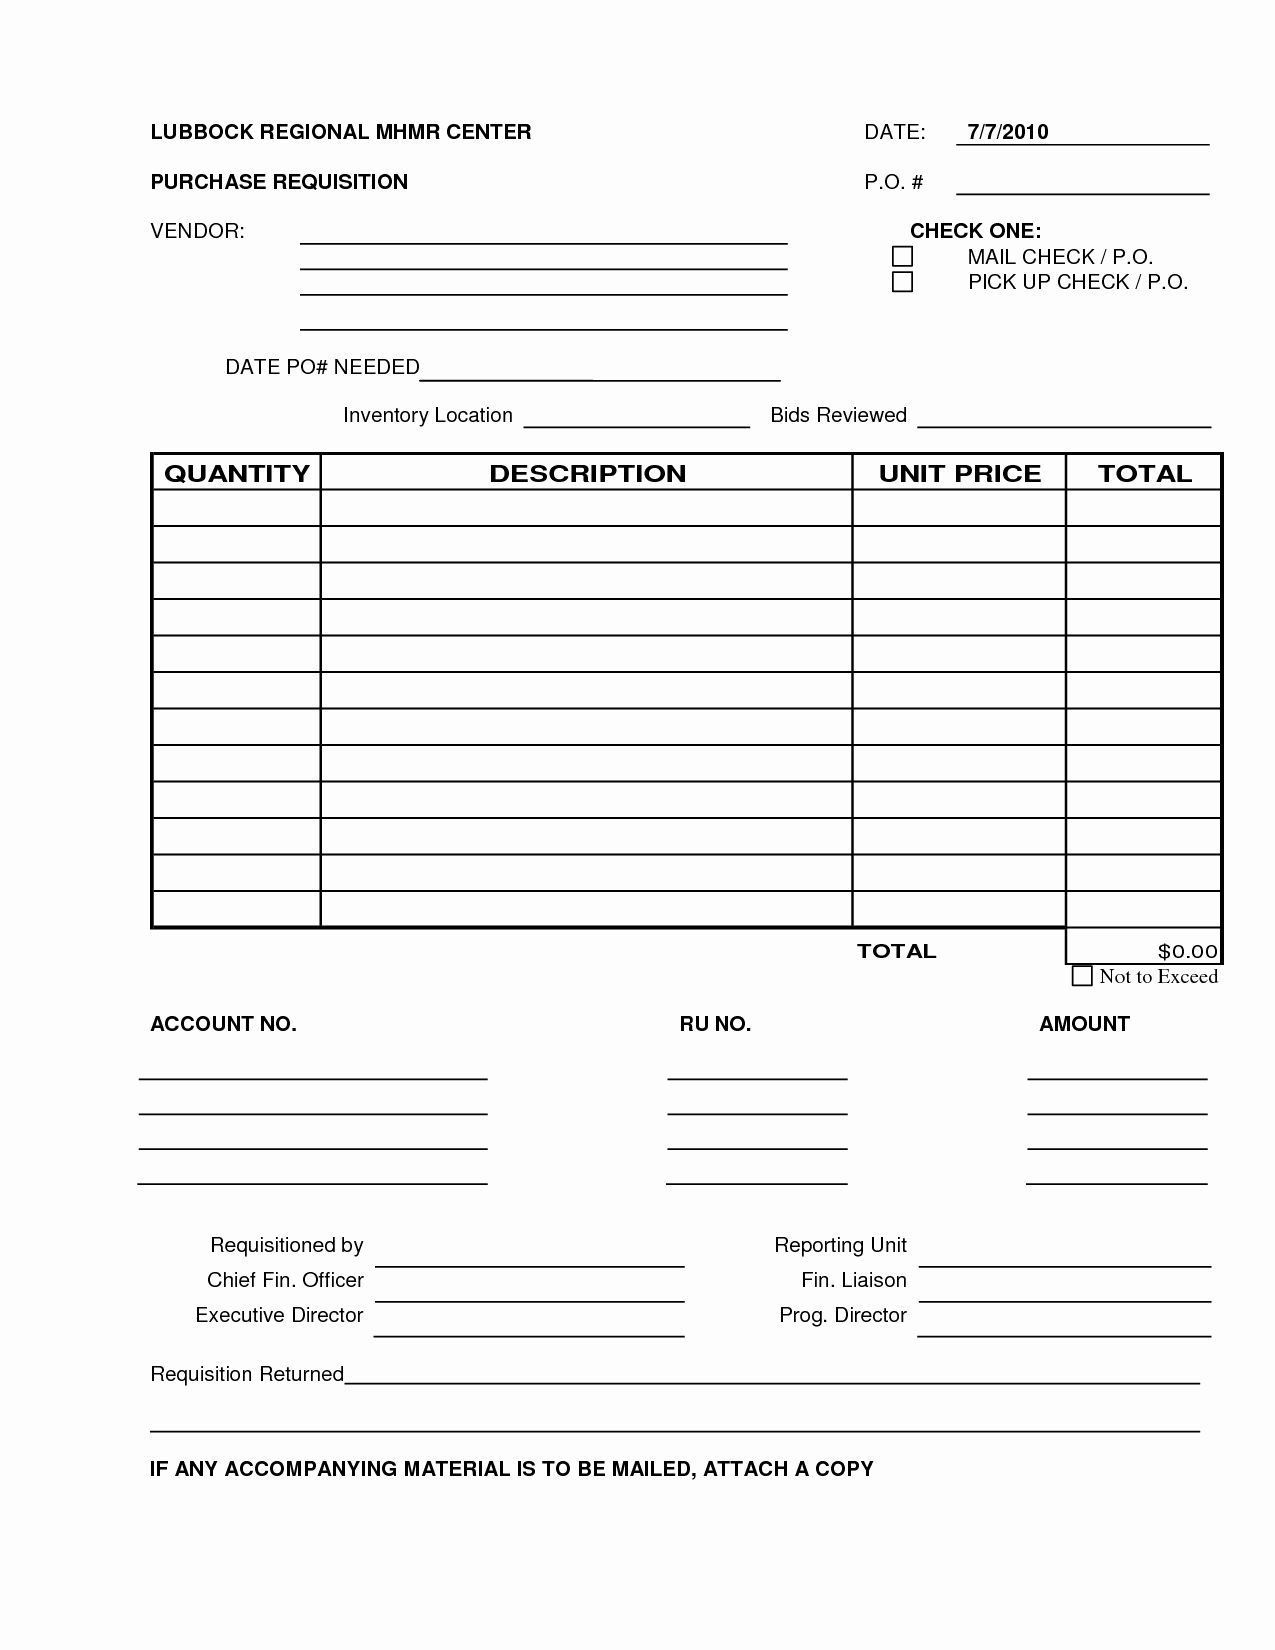 purchase request form template in 2020 templates, ticket career objective of a fresh graduate security manager resume examples for bank teller